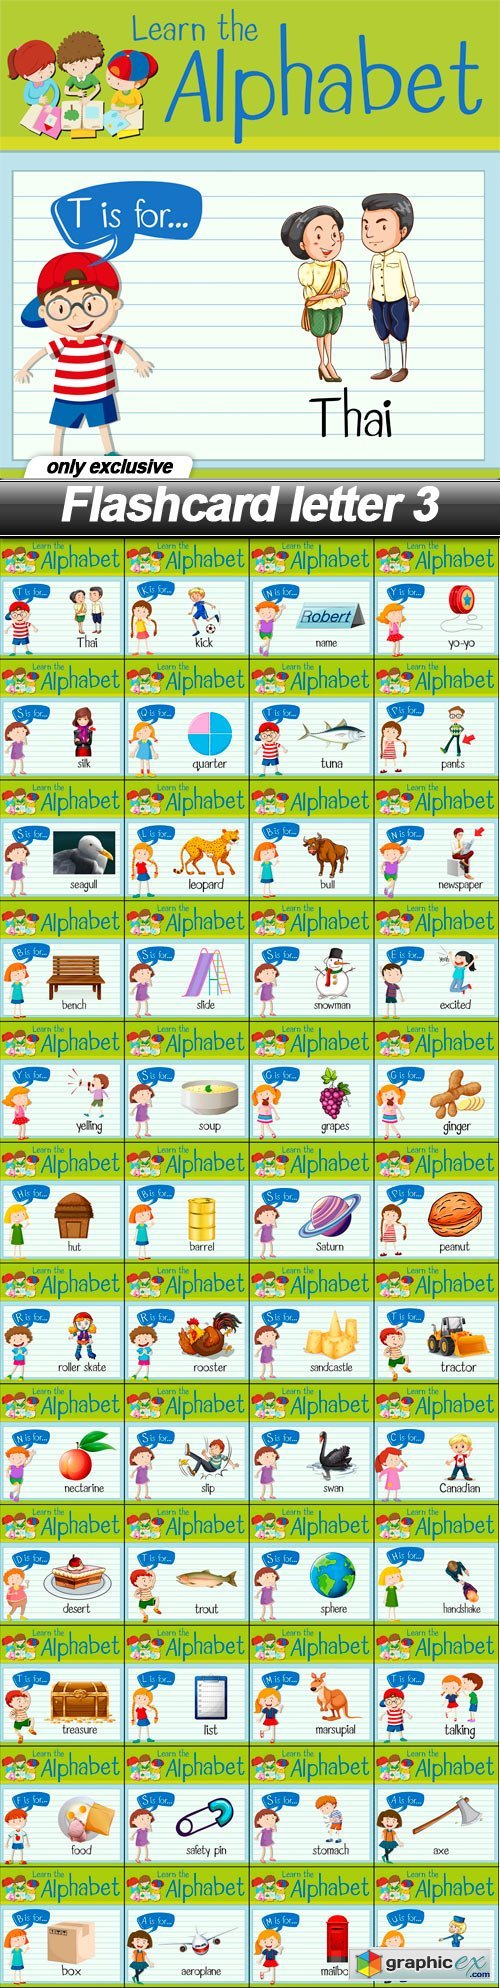 Flashcard letter 3 - 48 EPS